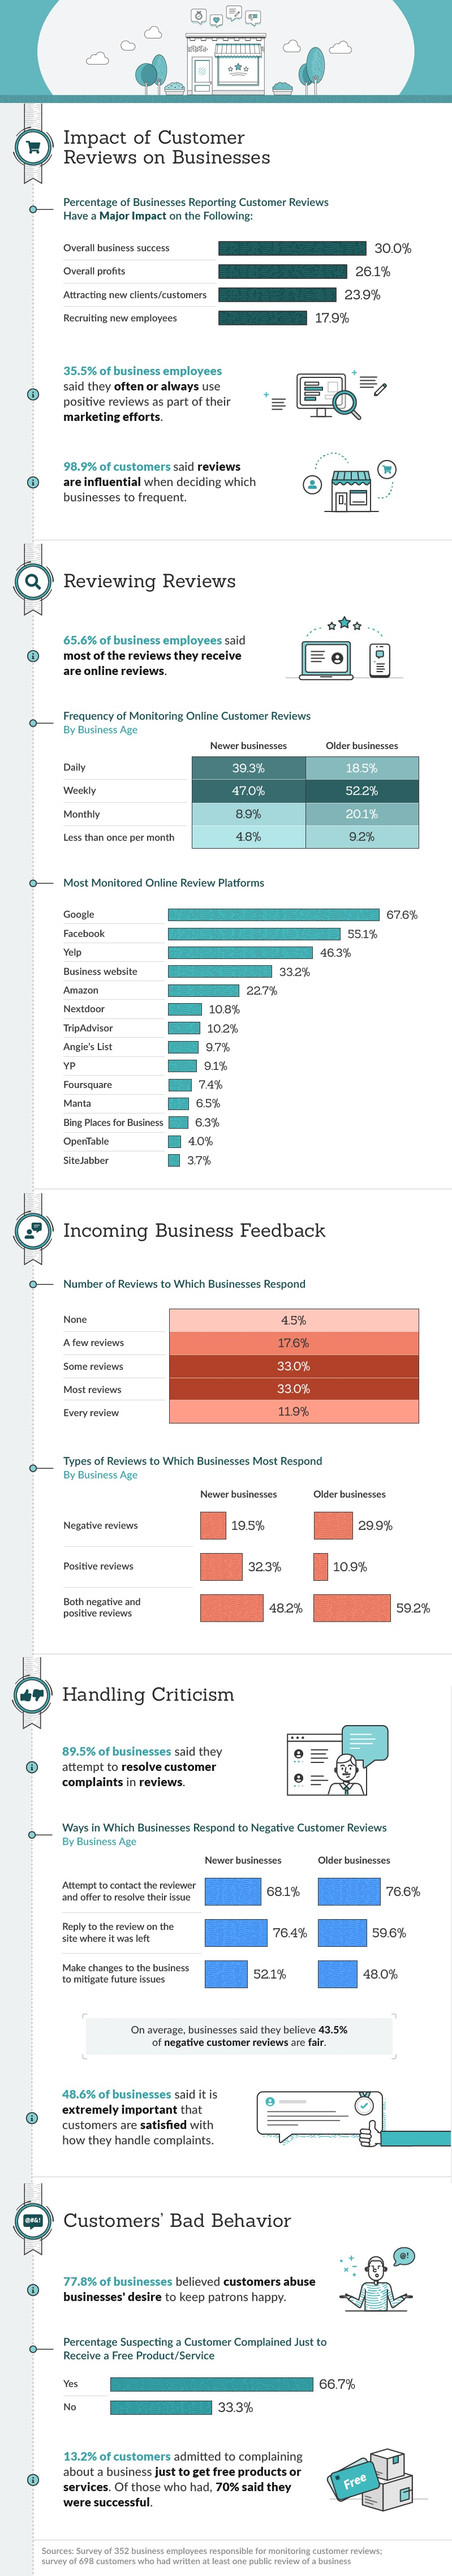 Infographic looks at how people use reviews in their decision-making process